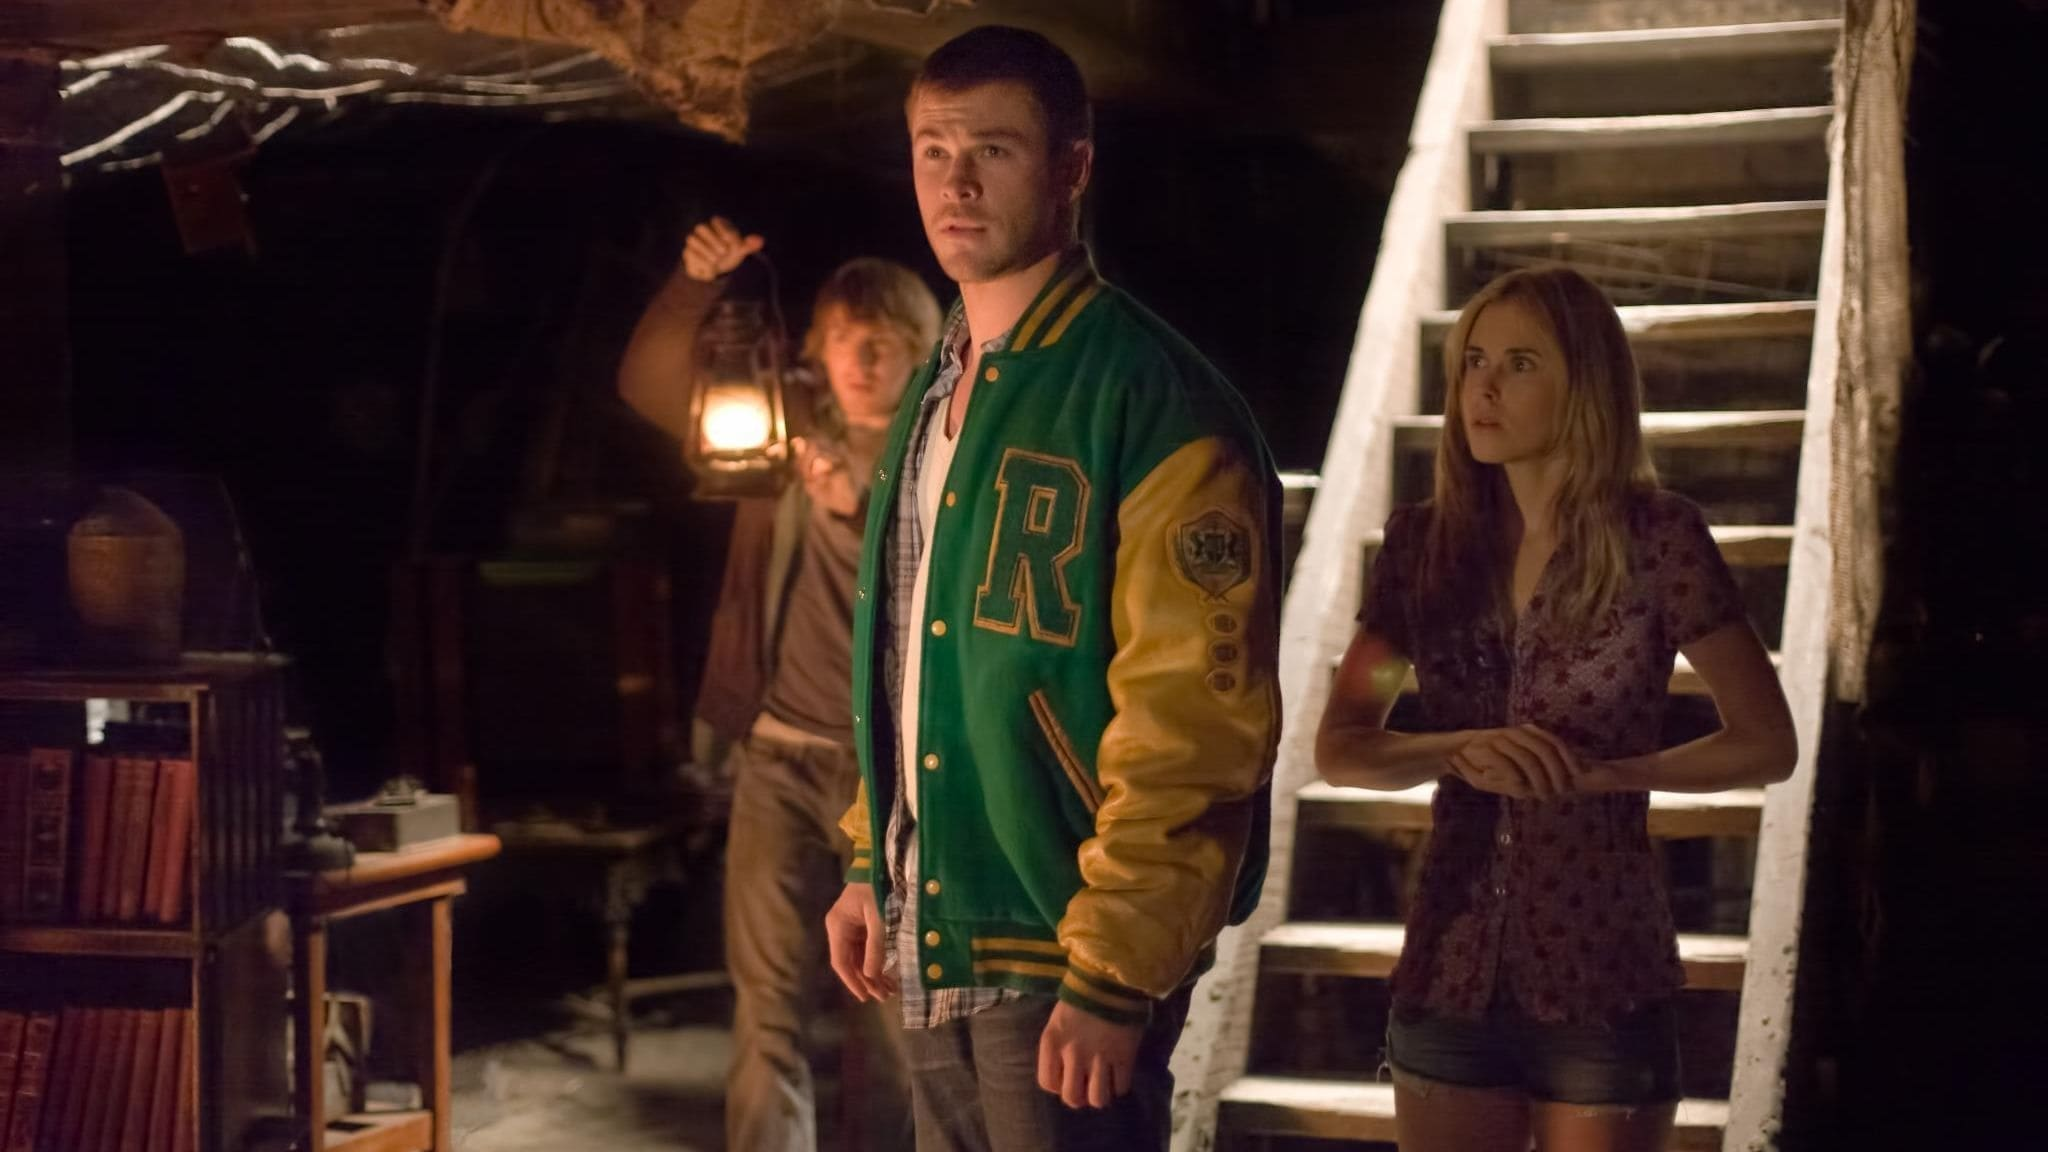 The Cabin in the Woods Movie